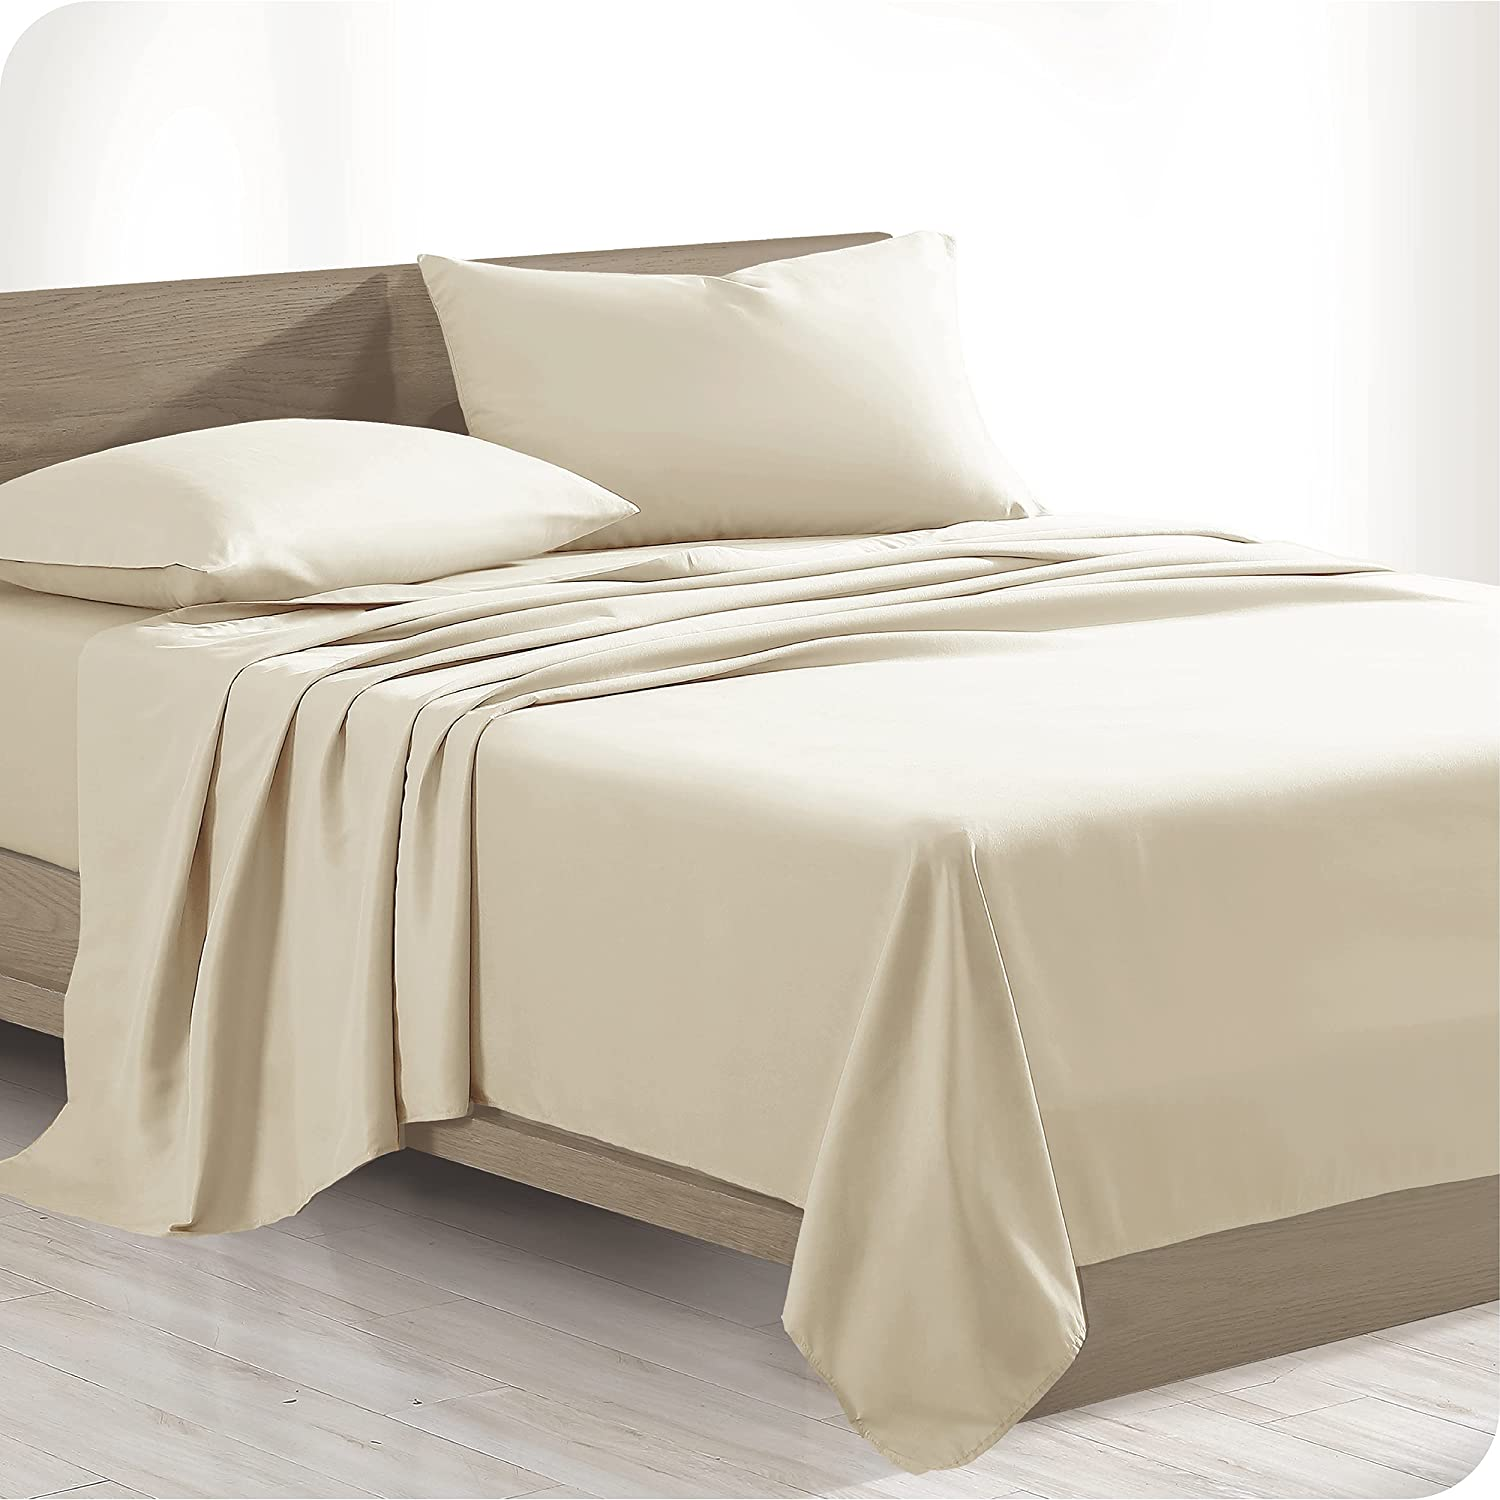 Bare Home 100% Organic Cotton Twin Sheet Set - Crisp Percale Weave - Lightweight & Breathable - Bedding Sheets & Pillowcases (Twin, French Beige)